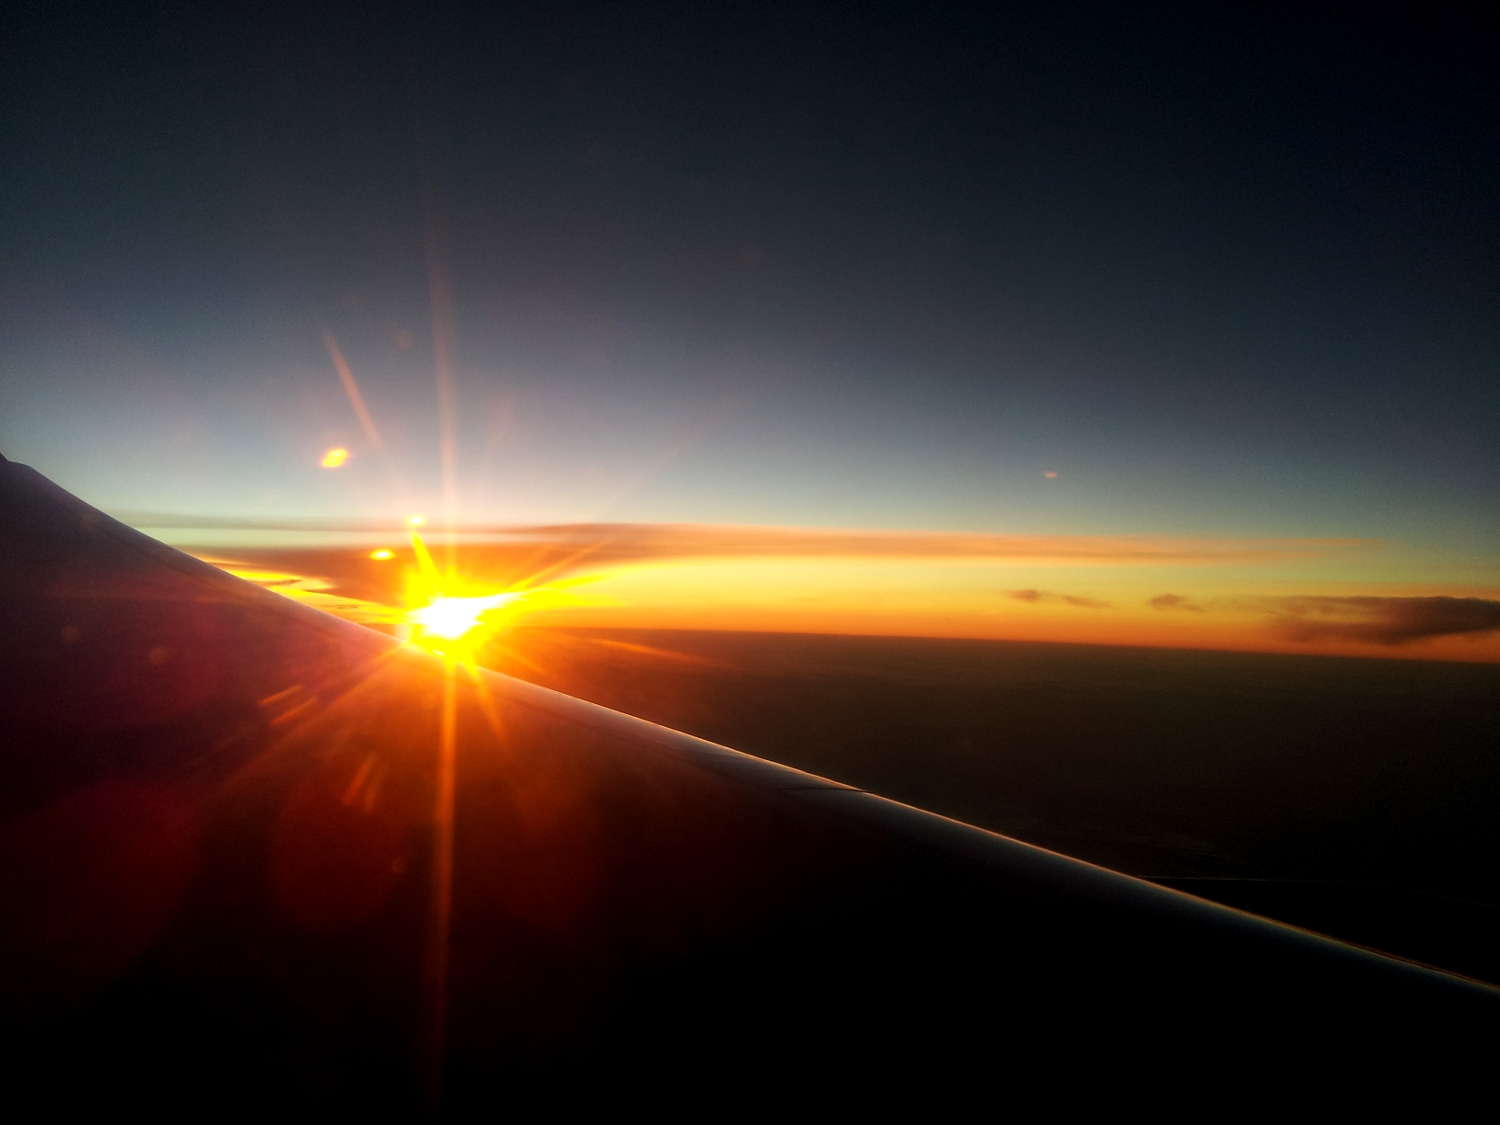 Sunrise seen from the airplane; trip to  Johannesburg